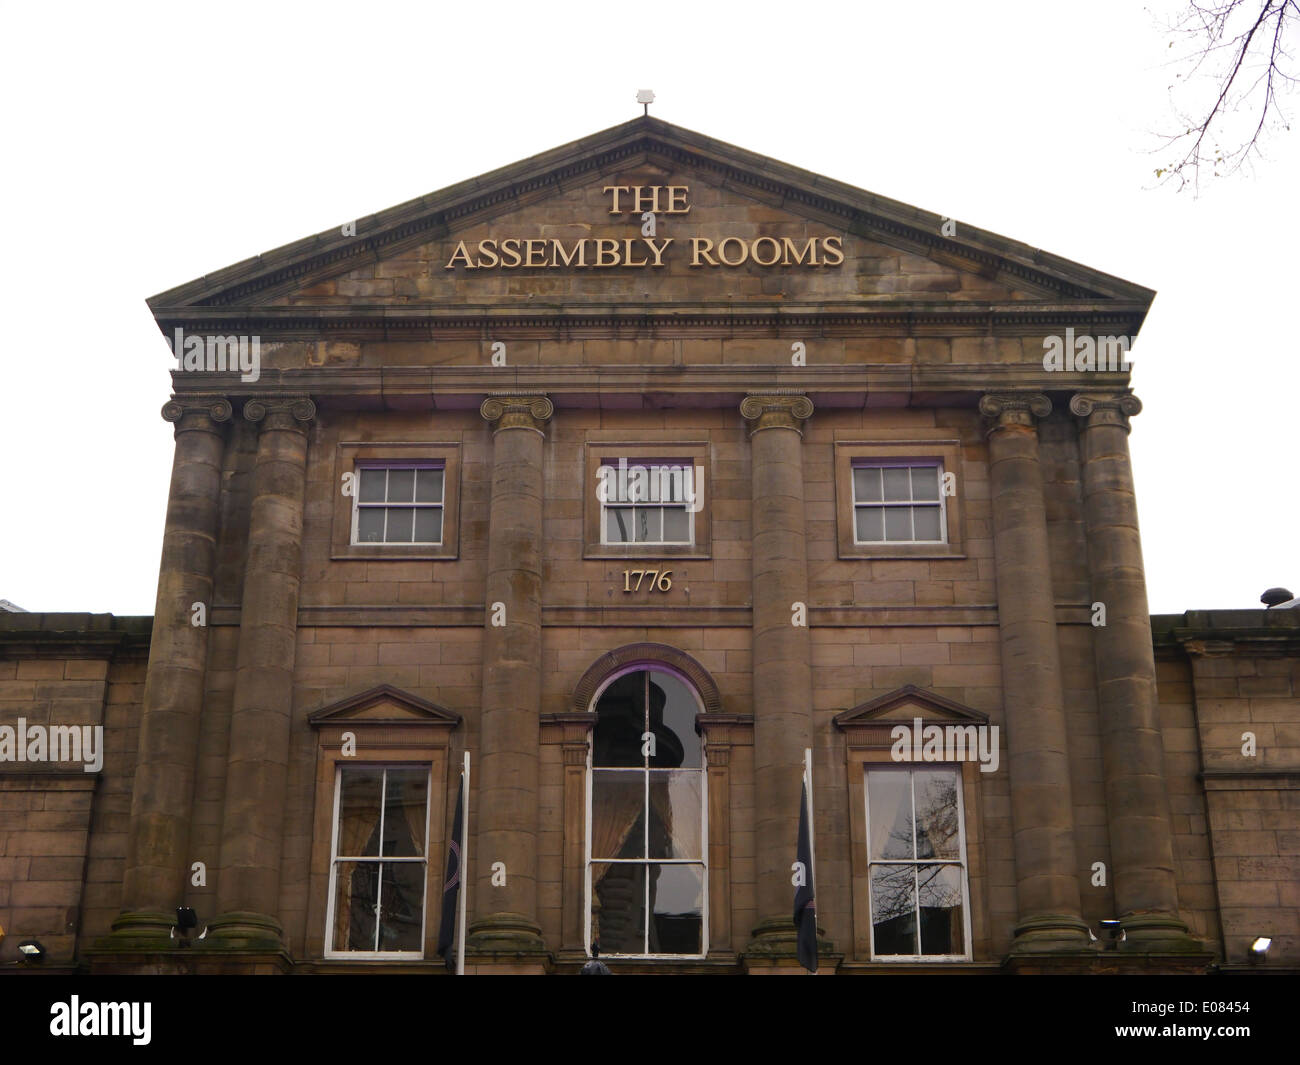 The Neo-classical Assembly Rooms, Westgate Road, Newcastle upon Tyne, UK - Stock Image